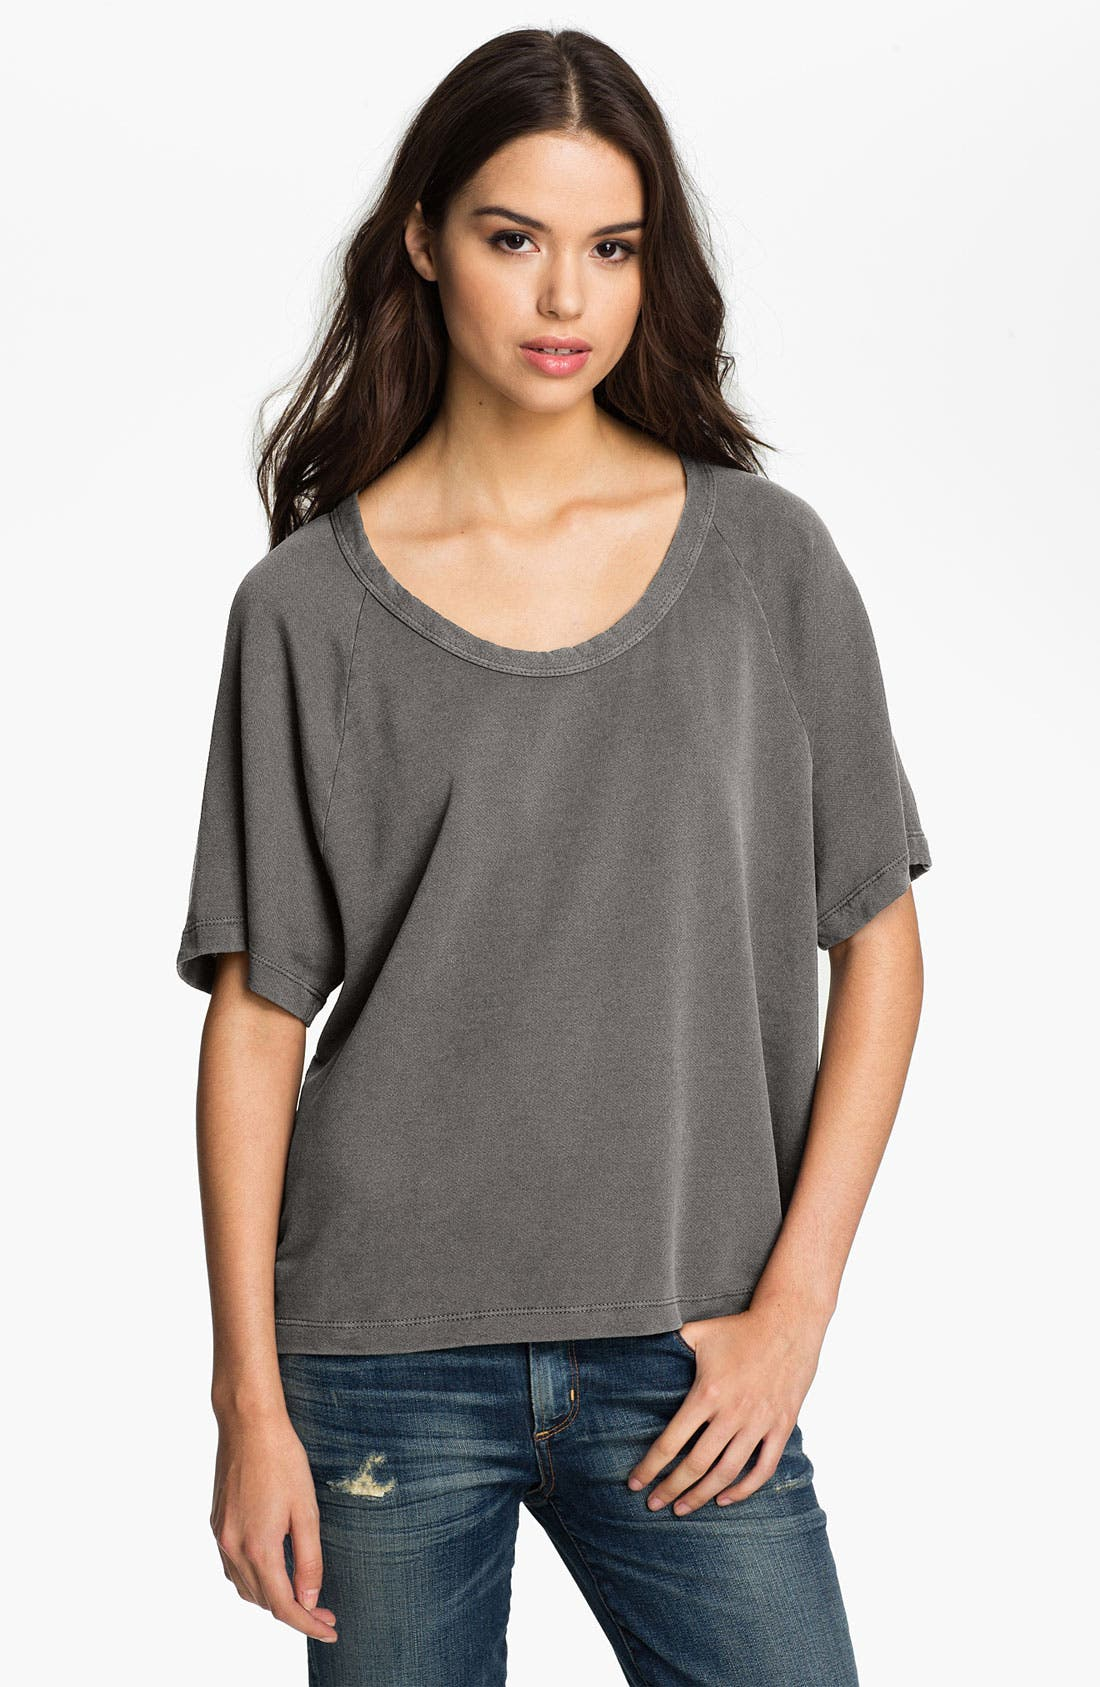 Main Image - James Perse Short Sleeve Oversized Sweatshirt